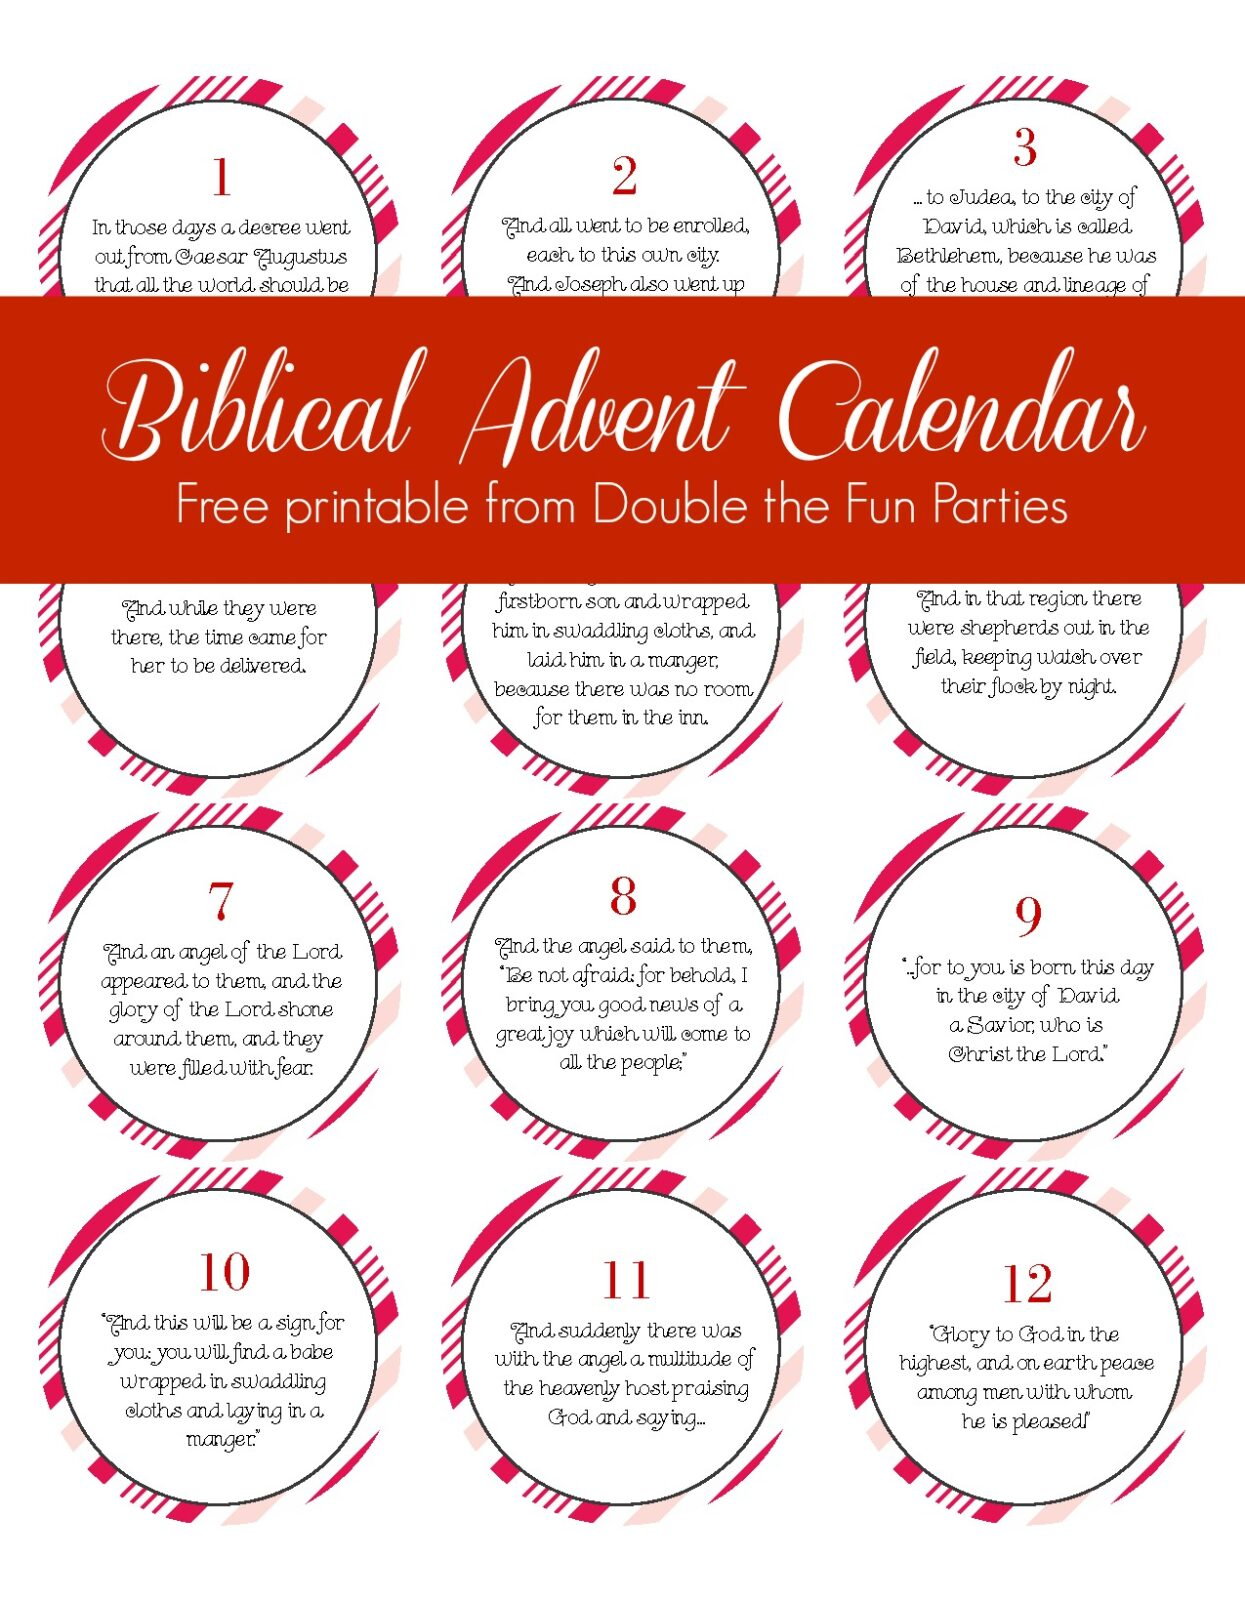 graphic about Advent Calendar Printable referred to as Absolutely free Biblical Arrival Calendar Printable